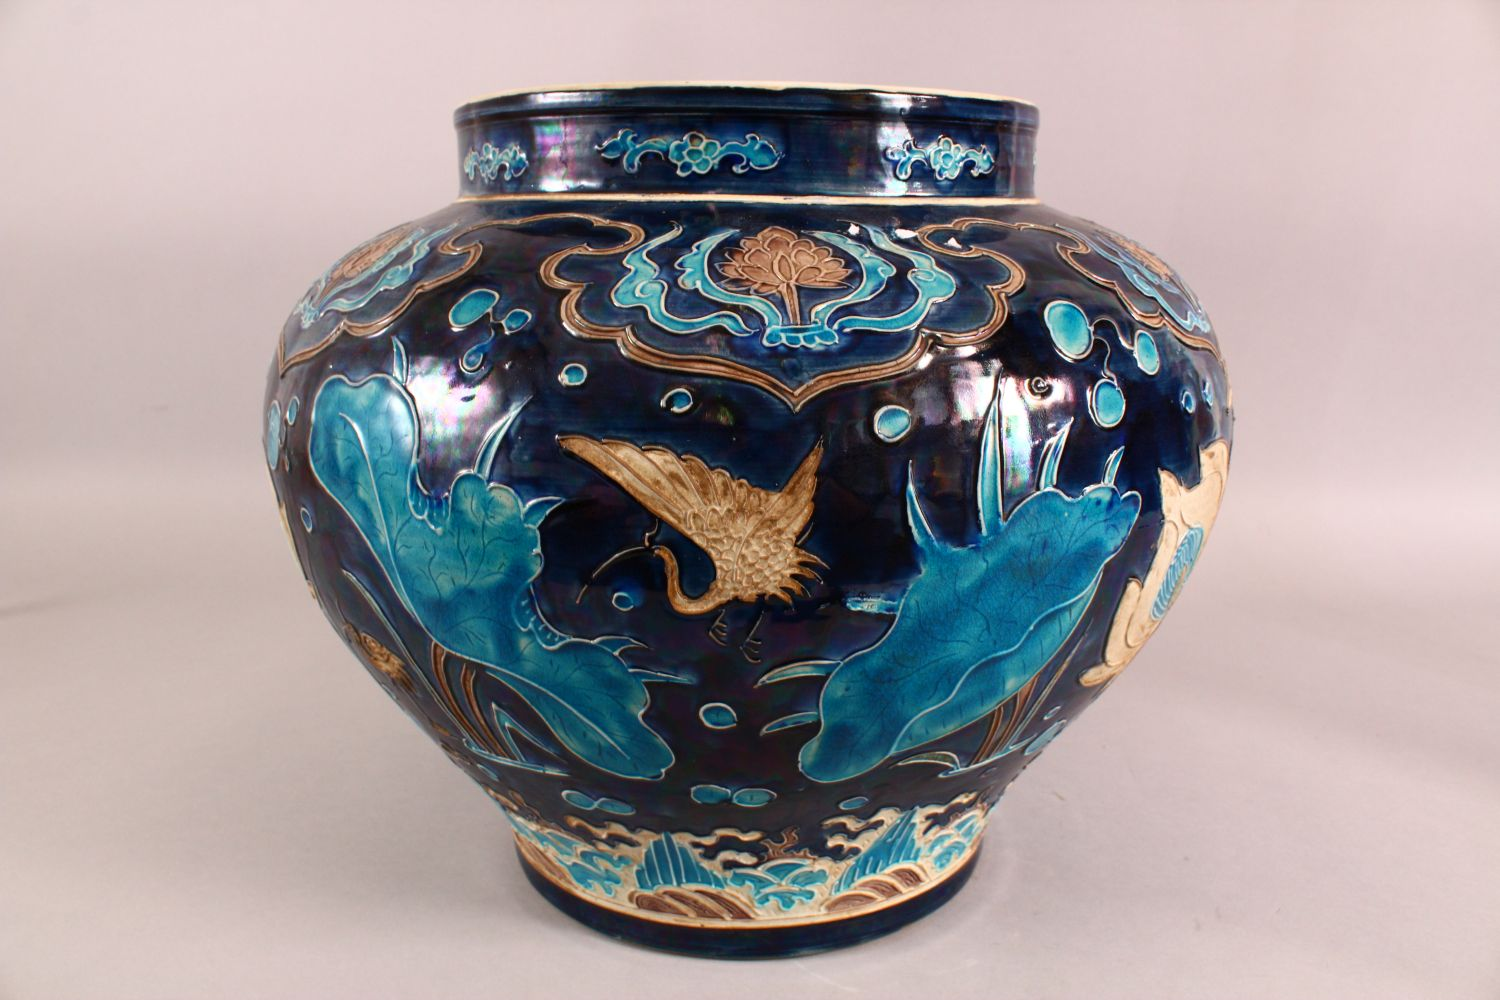 A LARGE CHINESE FAHUHA VASE, decorated with relief linework depicting lotus, lily pads and egrets - Image 2 of 7